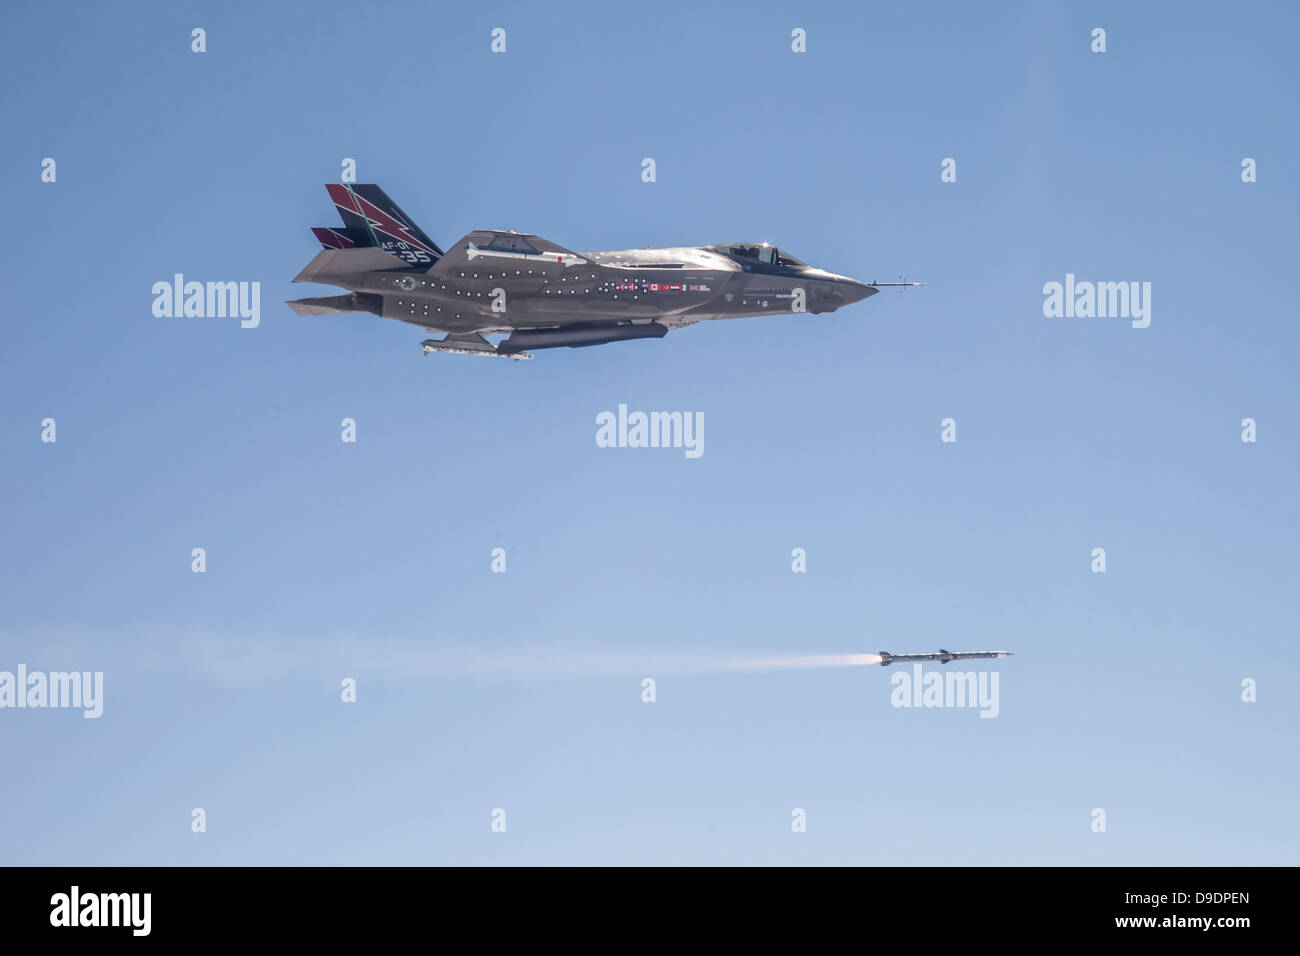 An F-35A conventional takeoff and landing (CTOL) aircraft conducts the first in-flight launch of an AIM-120 C5 missile. - Stock Image